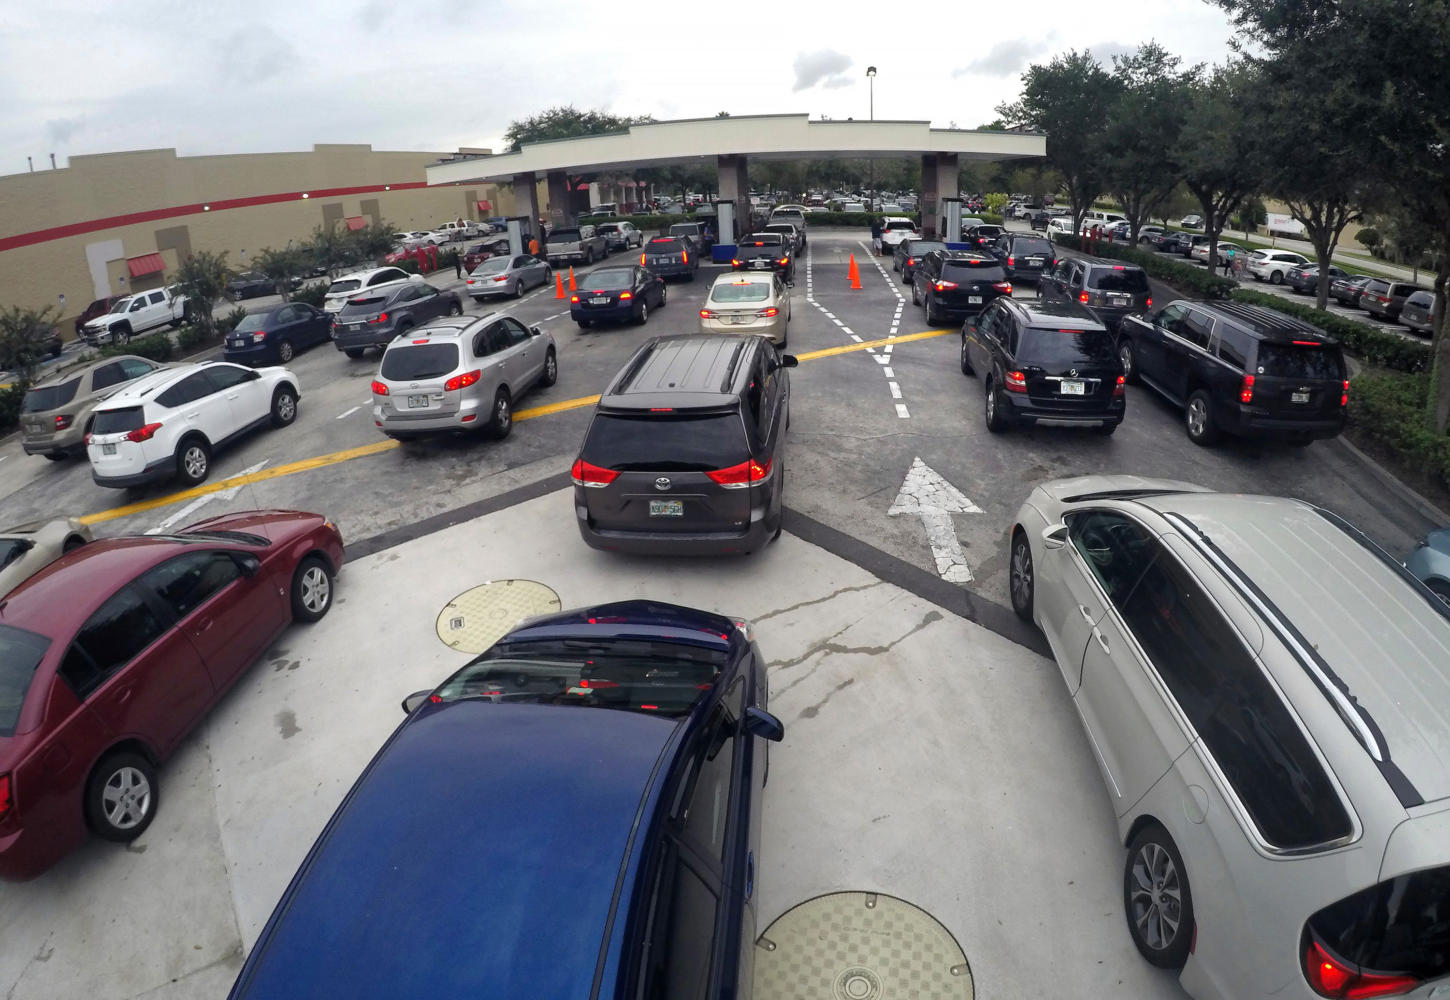 Drivers wait in line for gasoline at the Costco in Altamonte Springs, Fla., ahead of the anticipated arrival of Hurricane Irma on Wednesday, Sept. 6, 2017. (Joe Burbank/Orlando Sentinel/TNS)